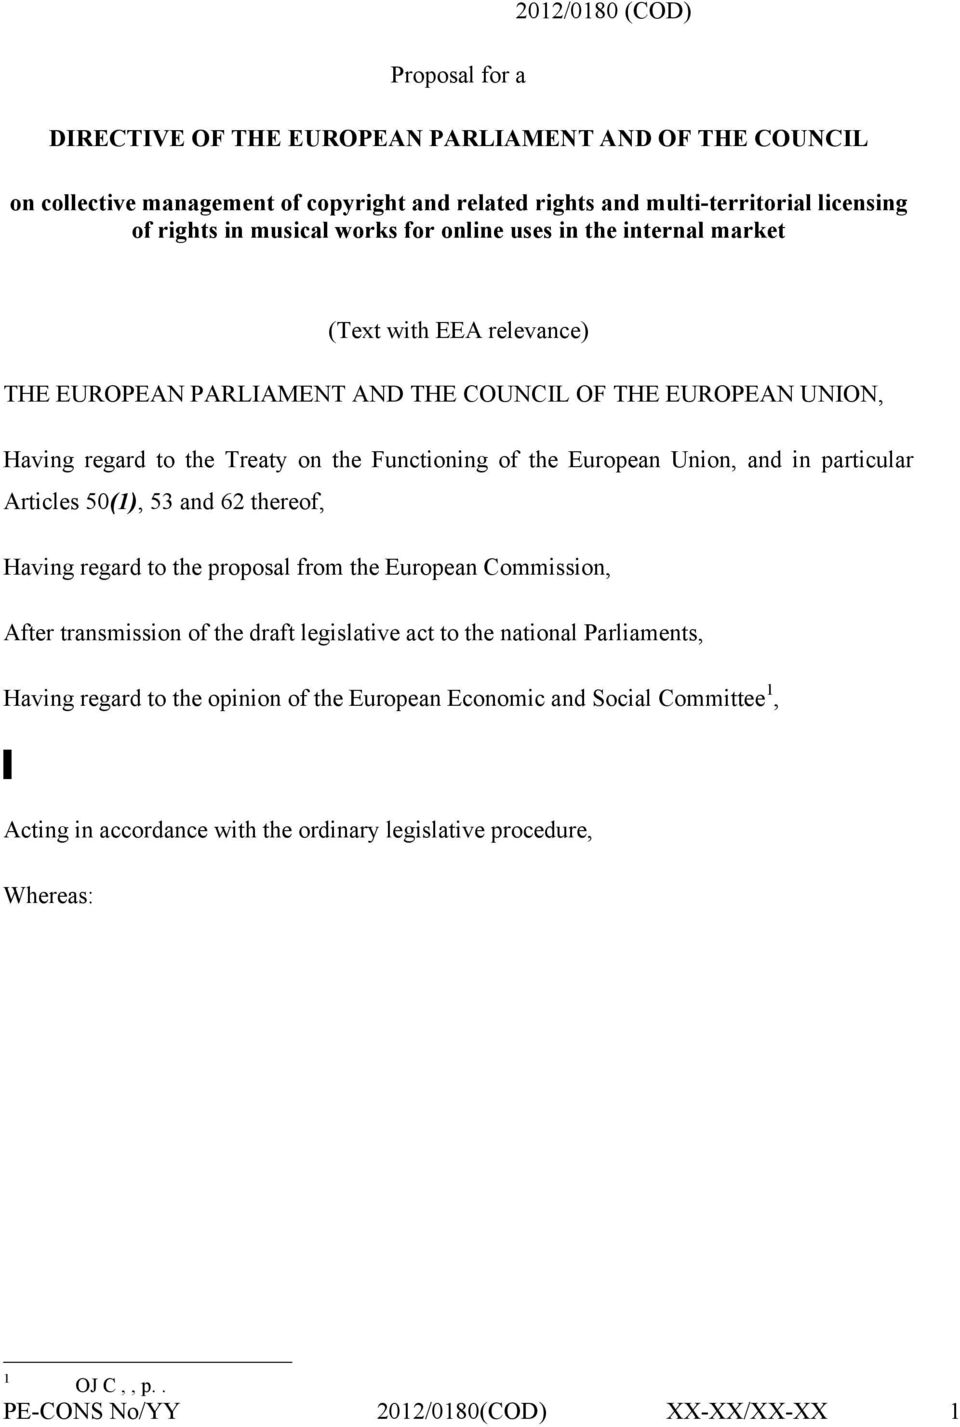 Union, and in particular Articles 50(1), 53 and 62 thereof, Having regard to the proposal from the European Commission, After transmission of the draft legislative act to the national Parliaments,